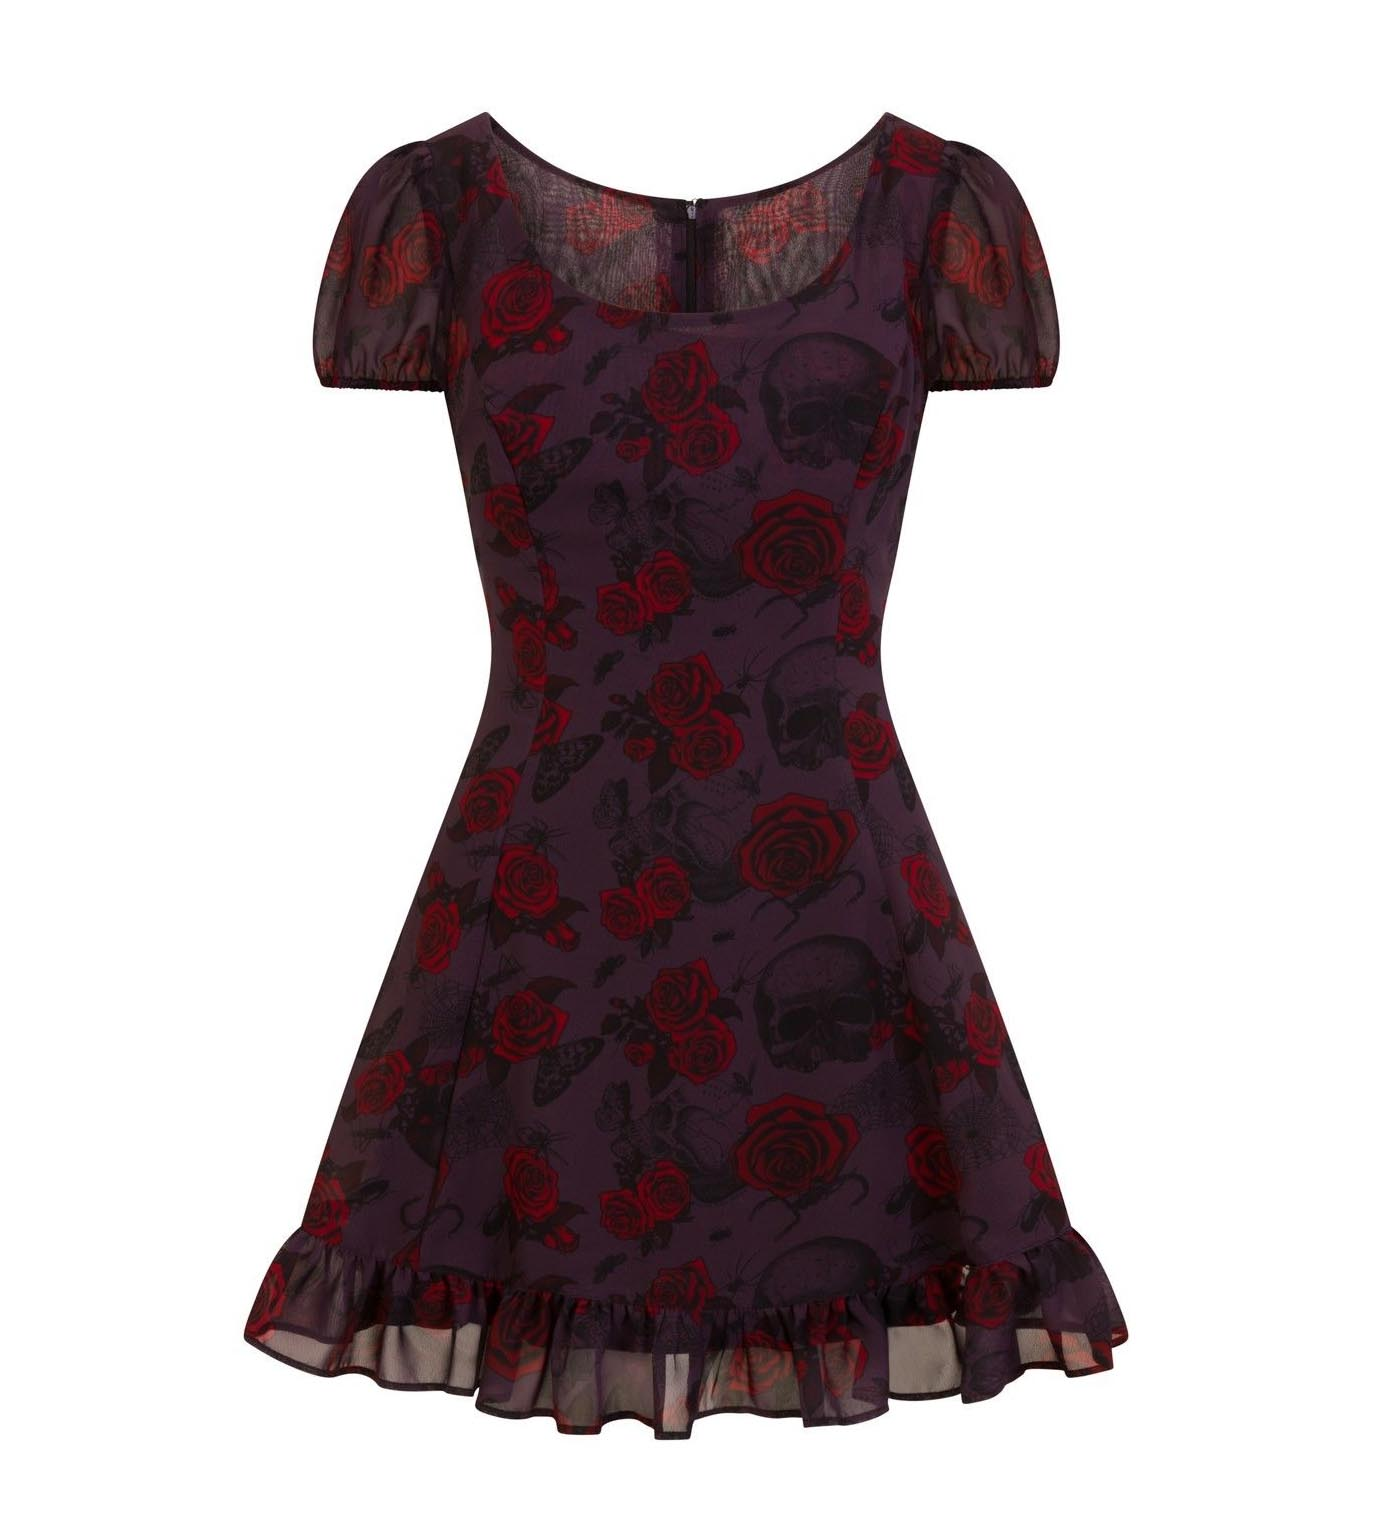 Hell-Bunny-Goth-Floaty-Mini-Dress-BUGS-amp-ROSES-Skulls-Butterfly-Purple-All-Sizes thumbnail 11